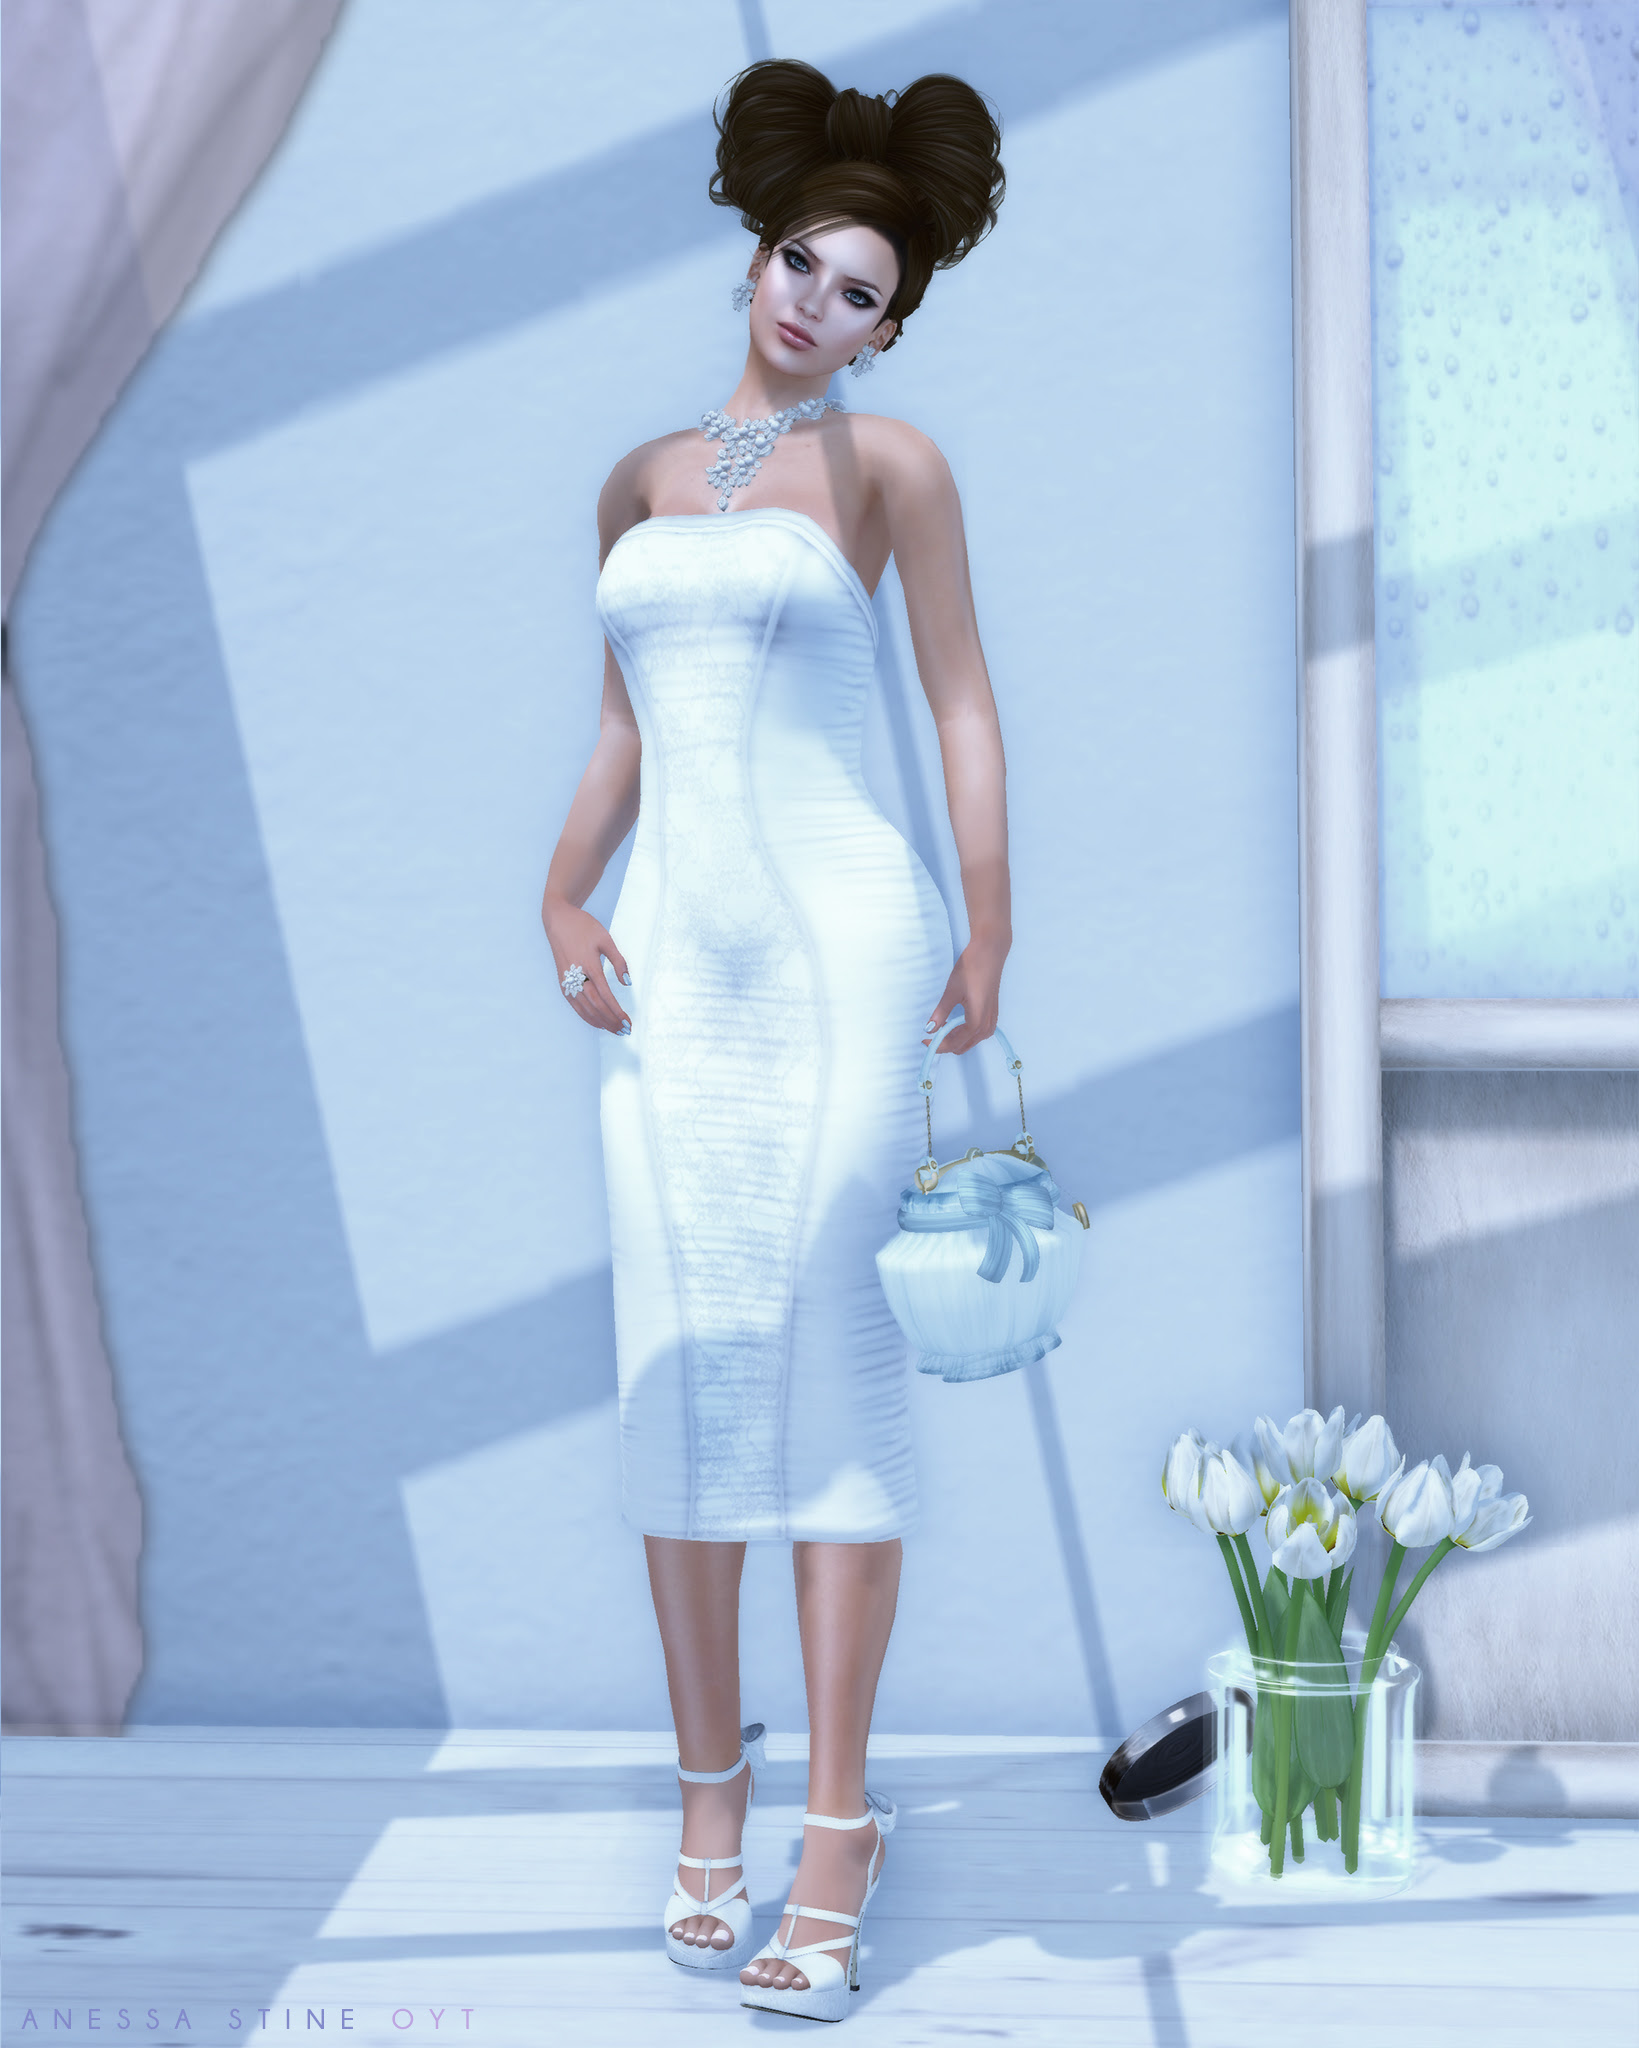 On Your Toes Blog: Girls in White Dresses